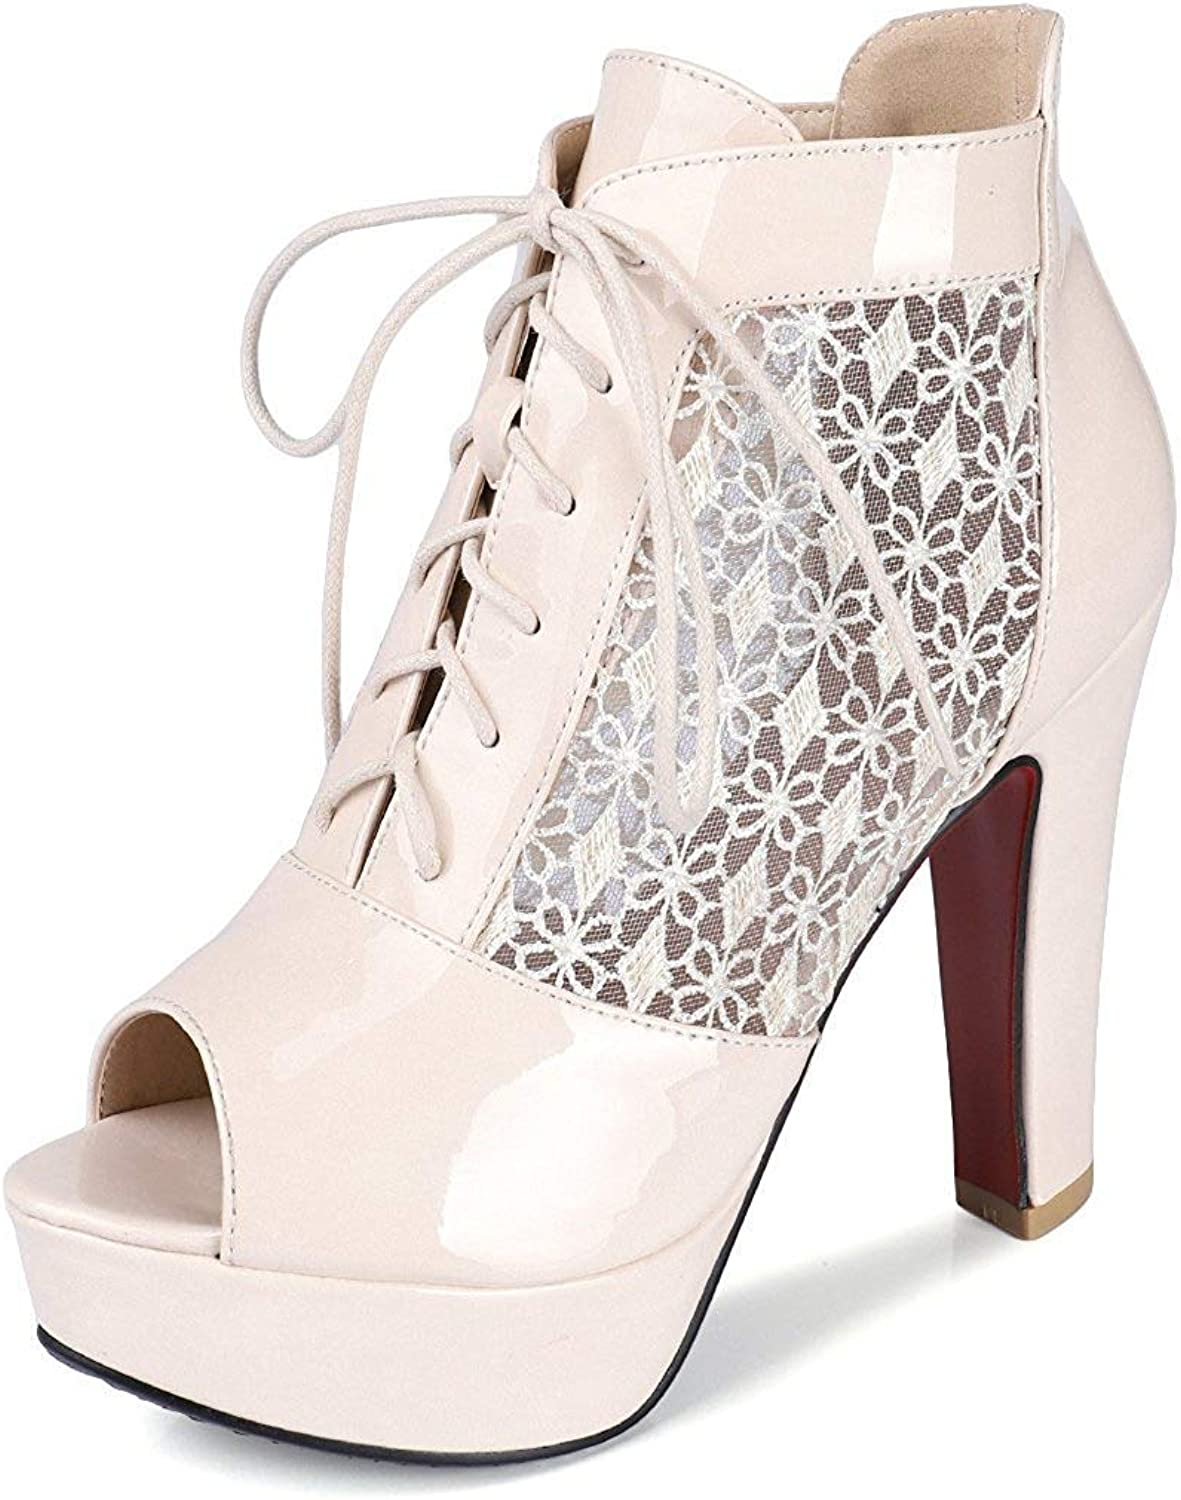 Unm Women's Lace up Sandals with Platform - Sexy Peep Toe Mesh High Heel - Burnished Chunky Summer Boot